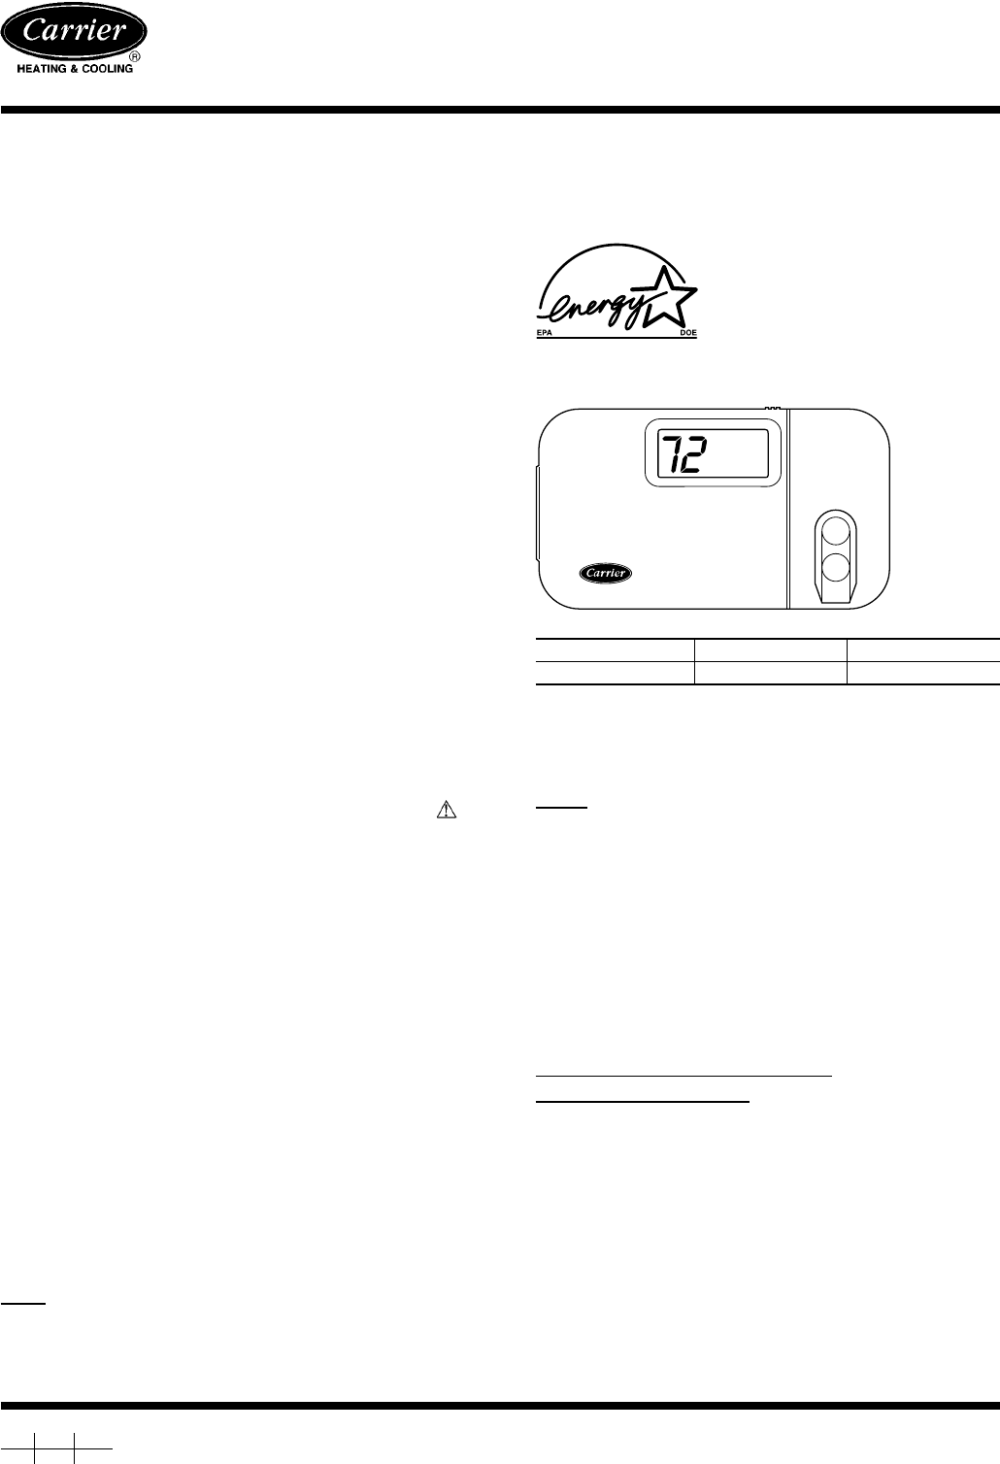 medium resolution of carrier thermostat thermostat user manual